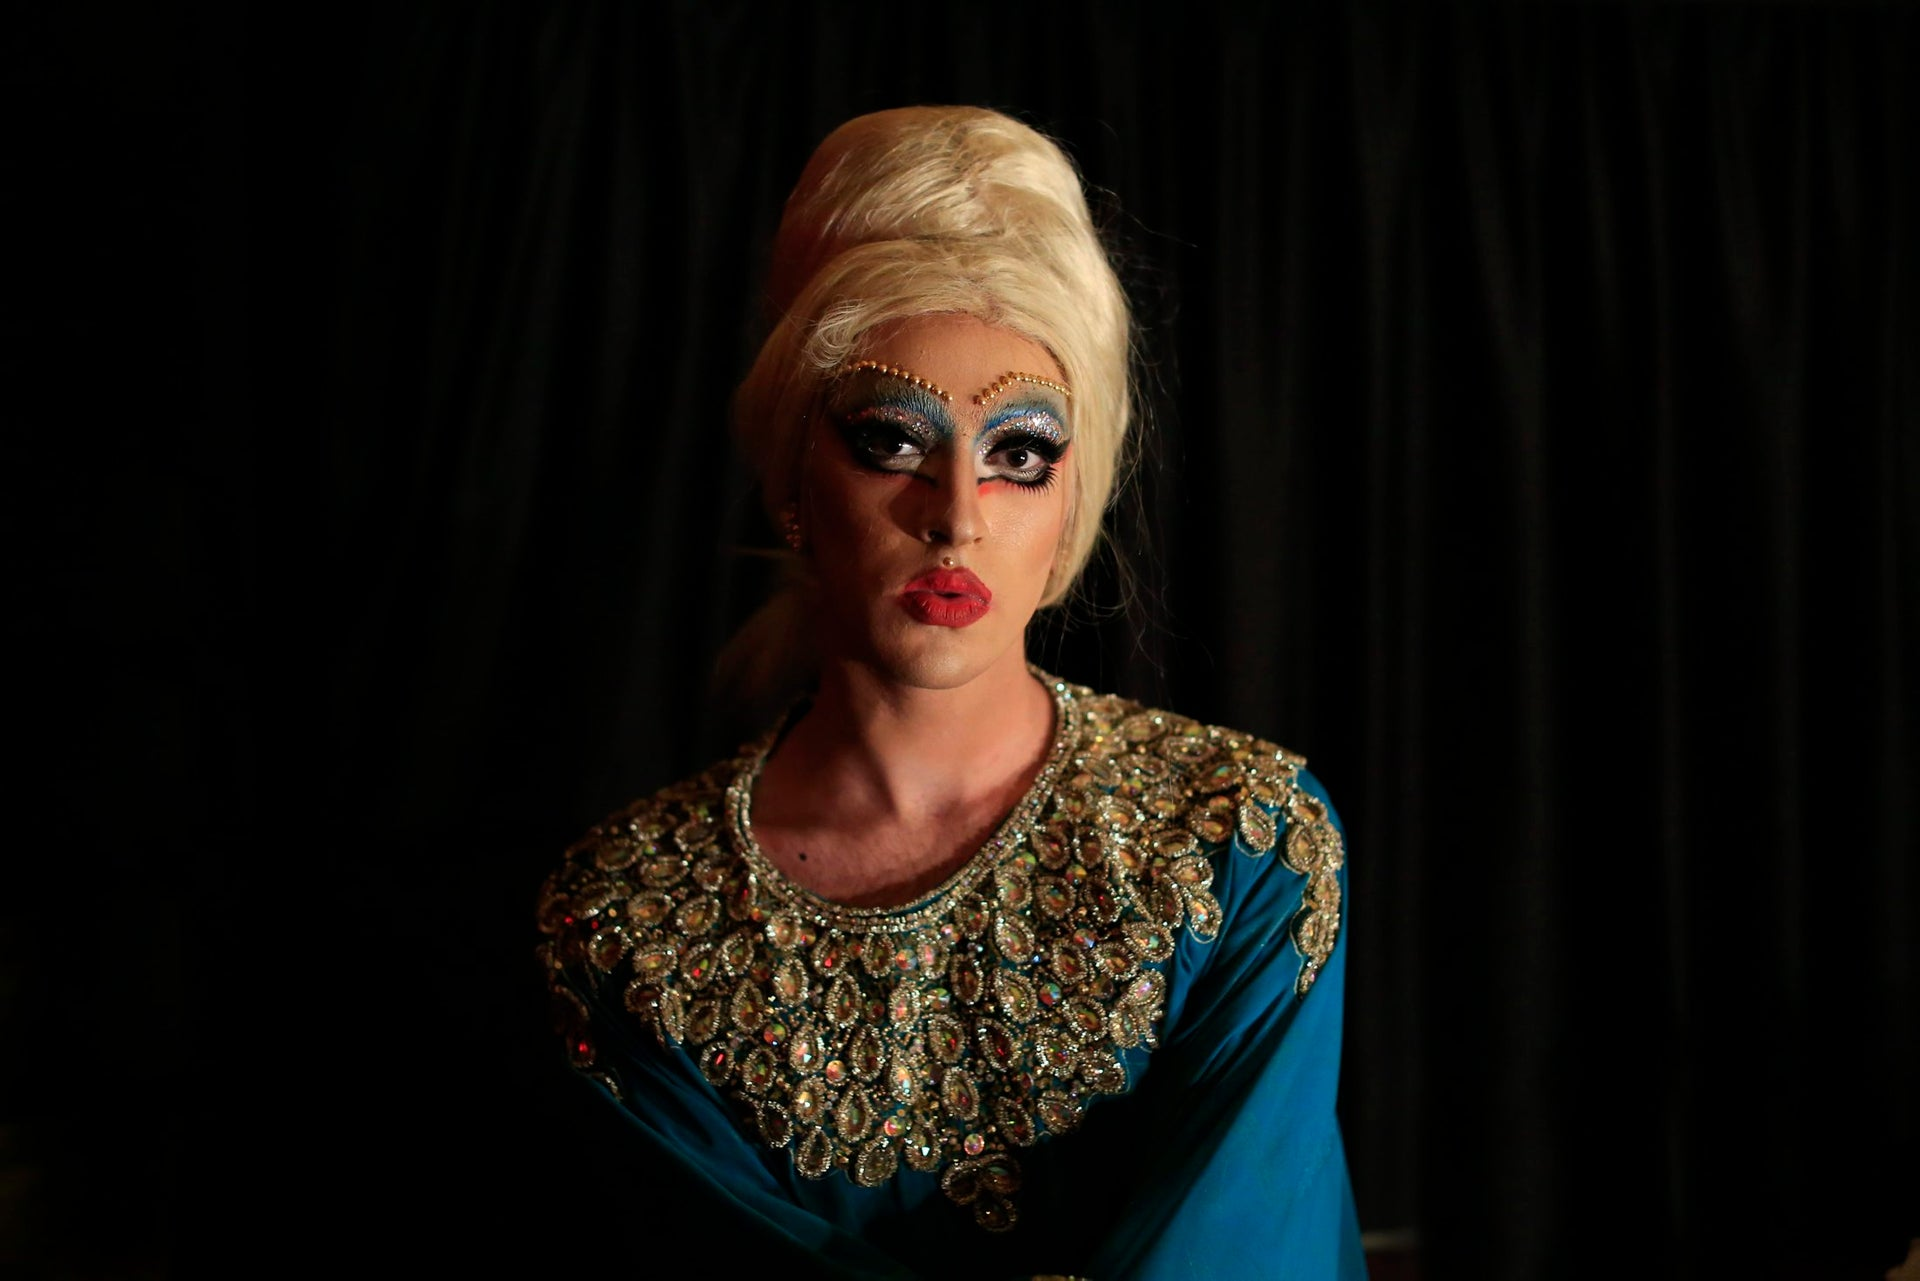 In this picture taken Sunday, May 13, 2018, Drag queen Emma Gration poses for a picture before performs during a Sunday drag queen show, called the drag ball, during Beirut Pride week, north of the capital Beirut, Lebanon.   For the past decade Lebanonג€™s LGBT community  has focused on activism to combat discrimination and abuse, making startling gains and even opening some space in the mainstream. The community is the most vibrant, creative and open in the Arab world.